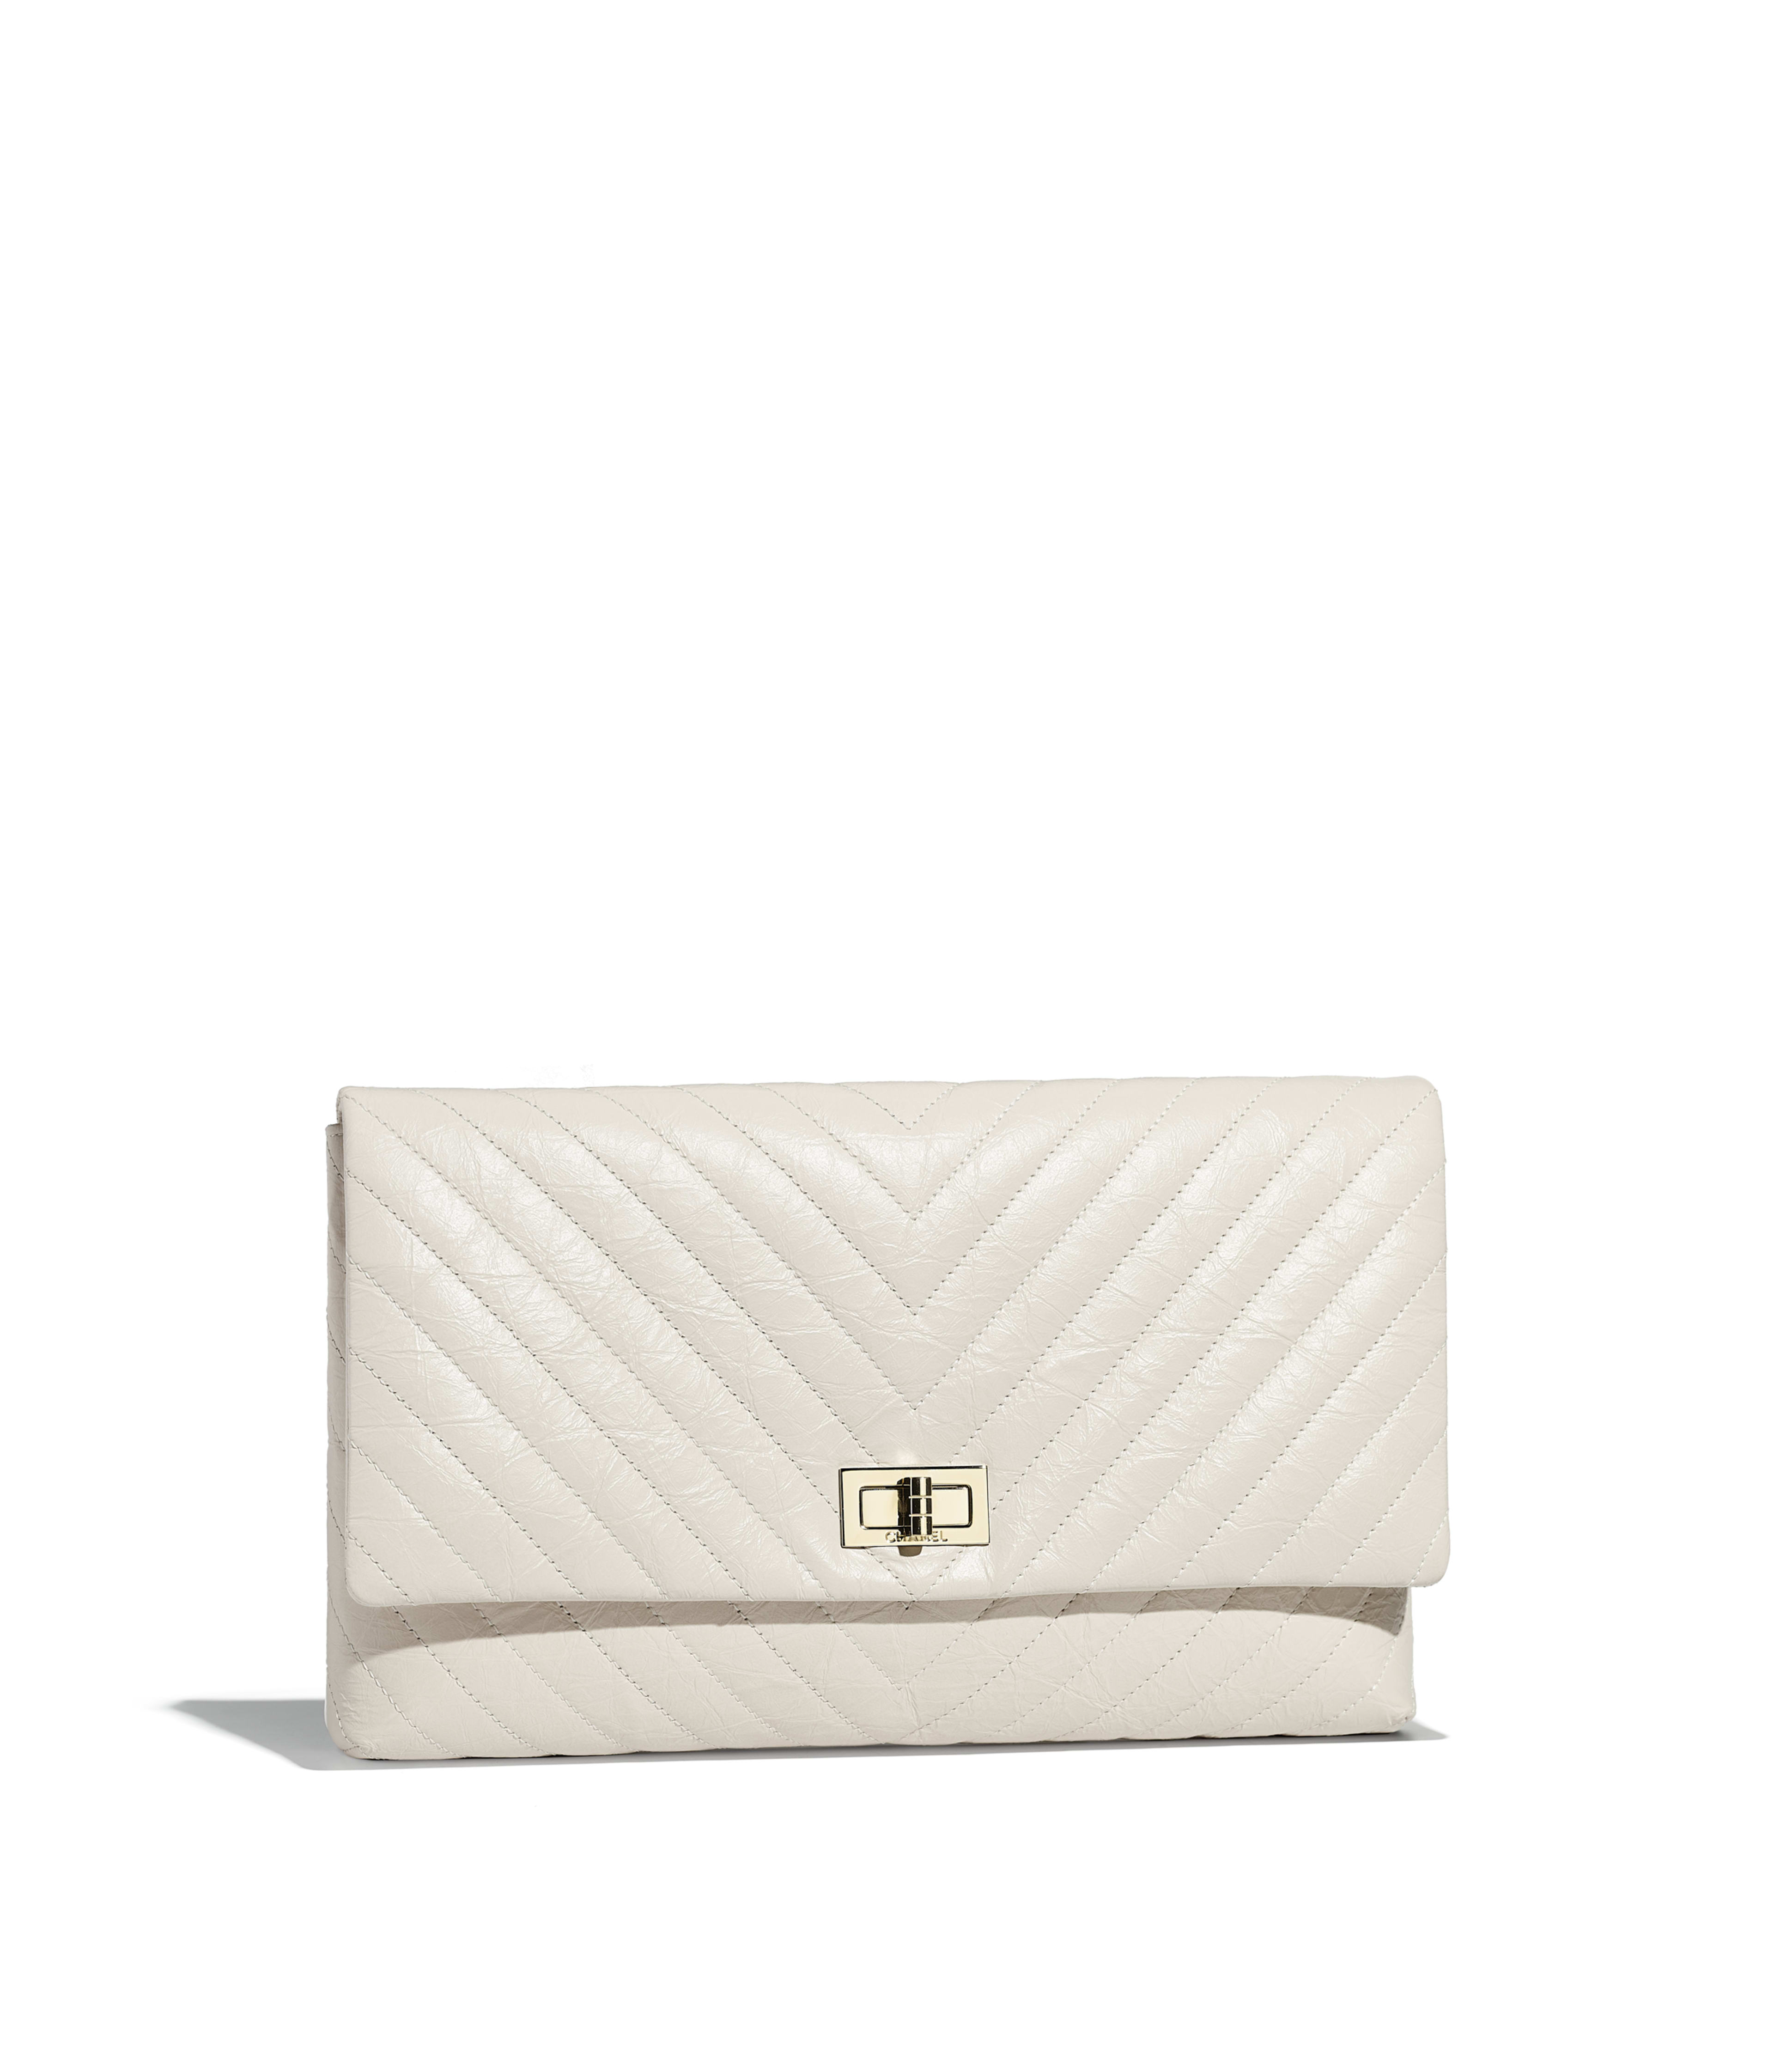 21d51414decd Metallic Etched Calfskin Gold Tone Metal Green Large 2 55 Handbag. Chanel  Small White Caviar Leather Double Flap Bag